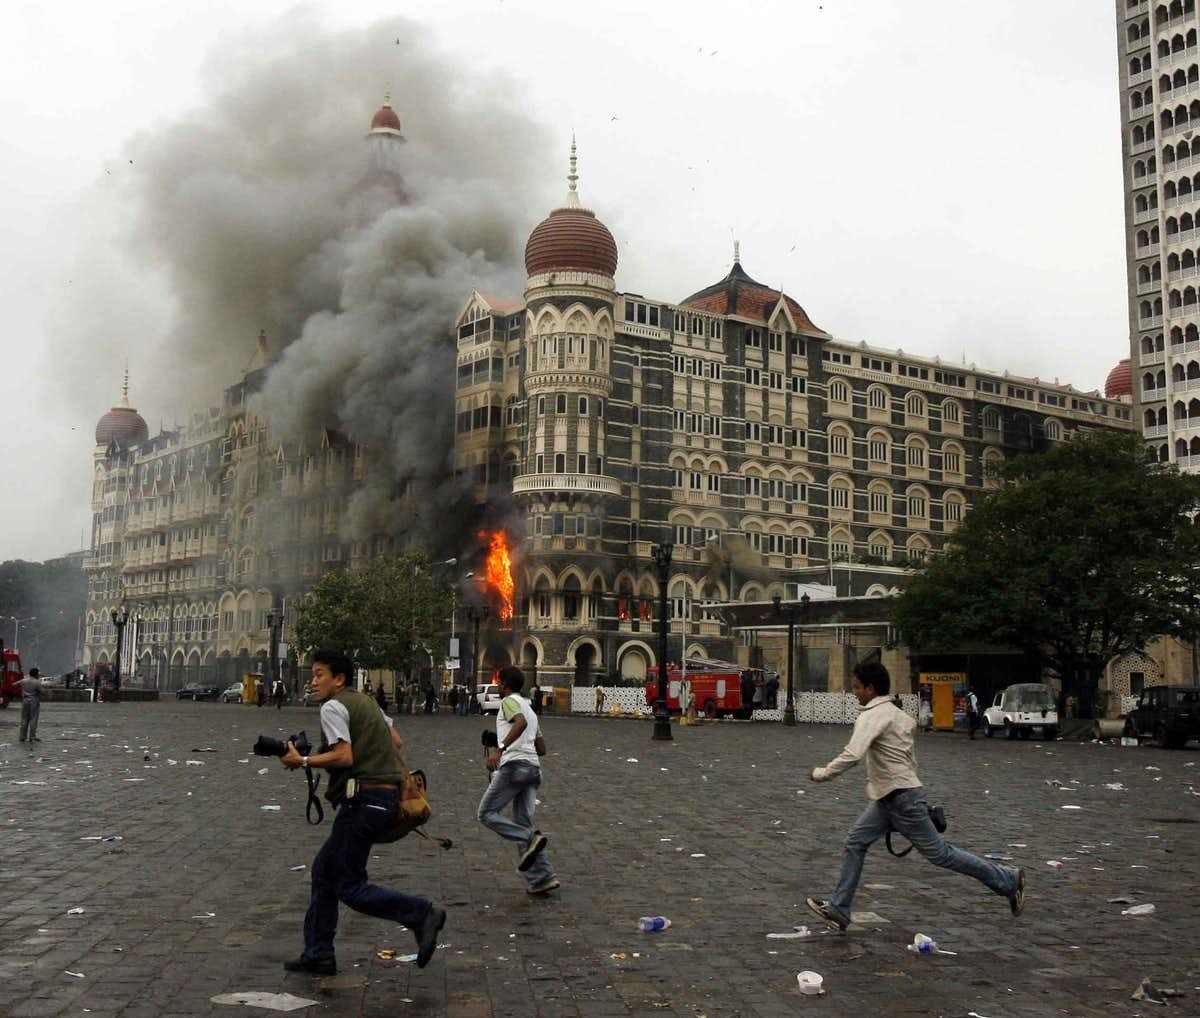 Journalists run for shelter as the Taj Mahal Hotel in Mumbai burns under fire from terrorists cooped inside.